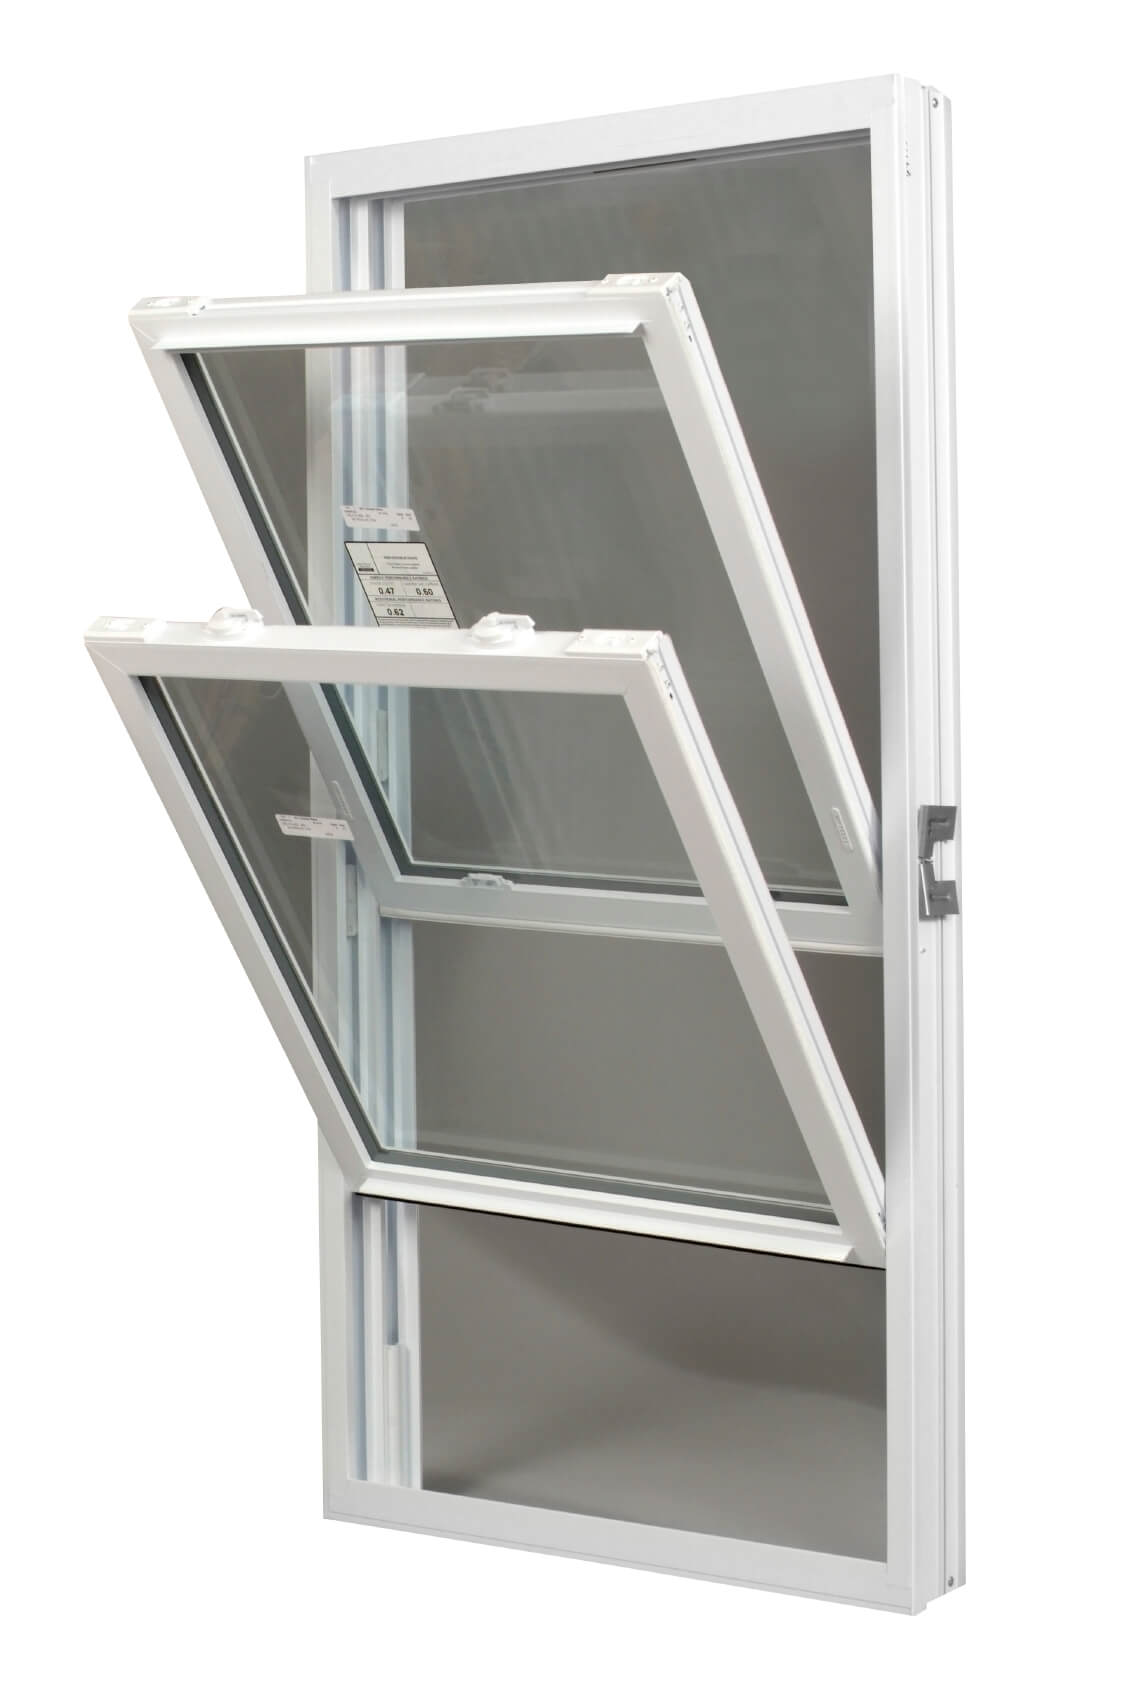 Double Hung Replacement Windows from Semko, Inc. - Chicago, IL